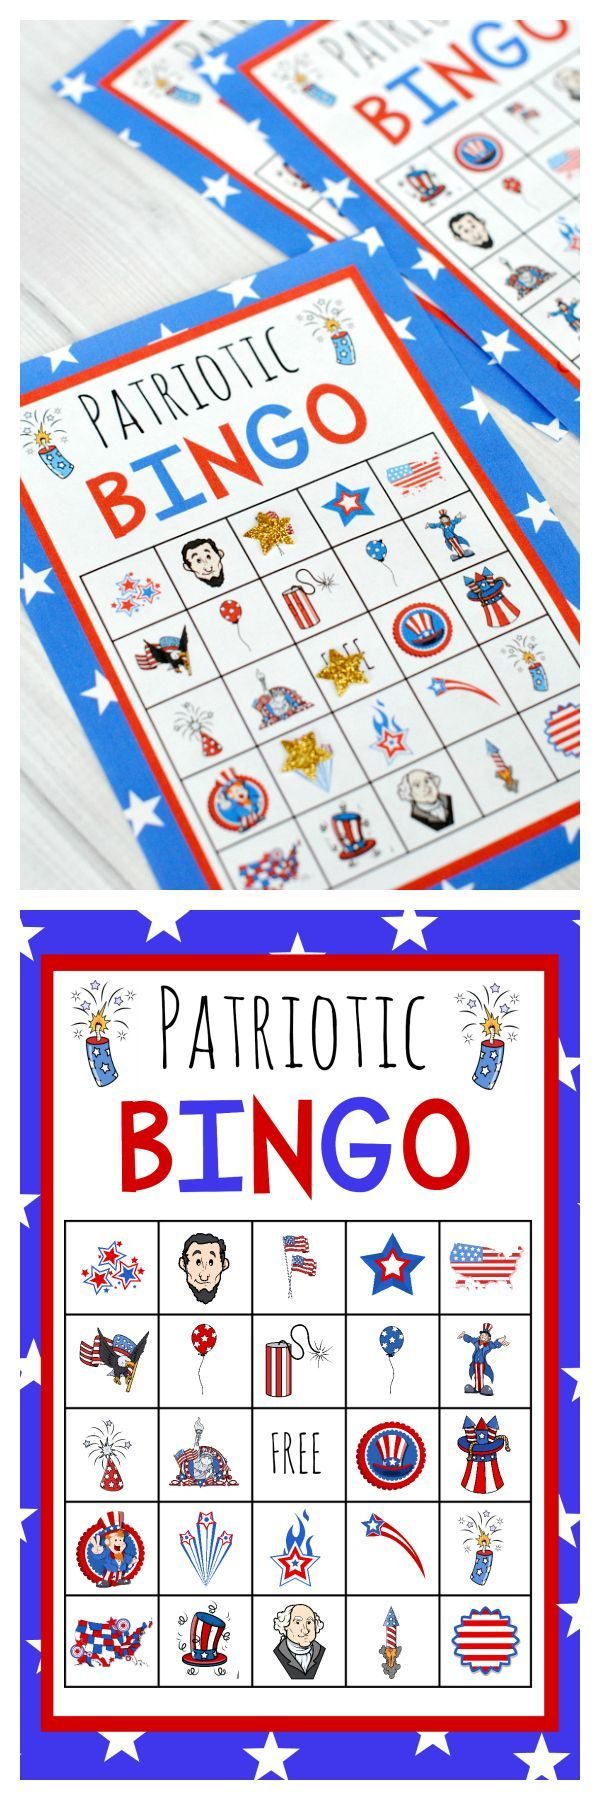 Patriotic 4Th Of July Bingo Game To Print | July Crafts, 4Th